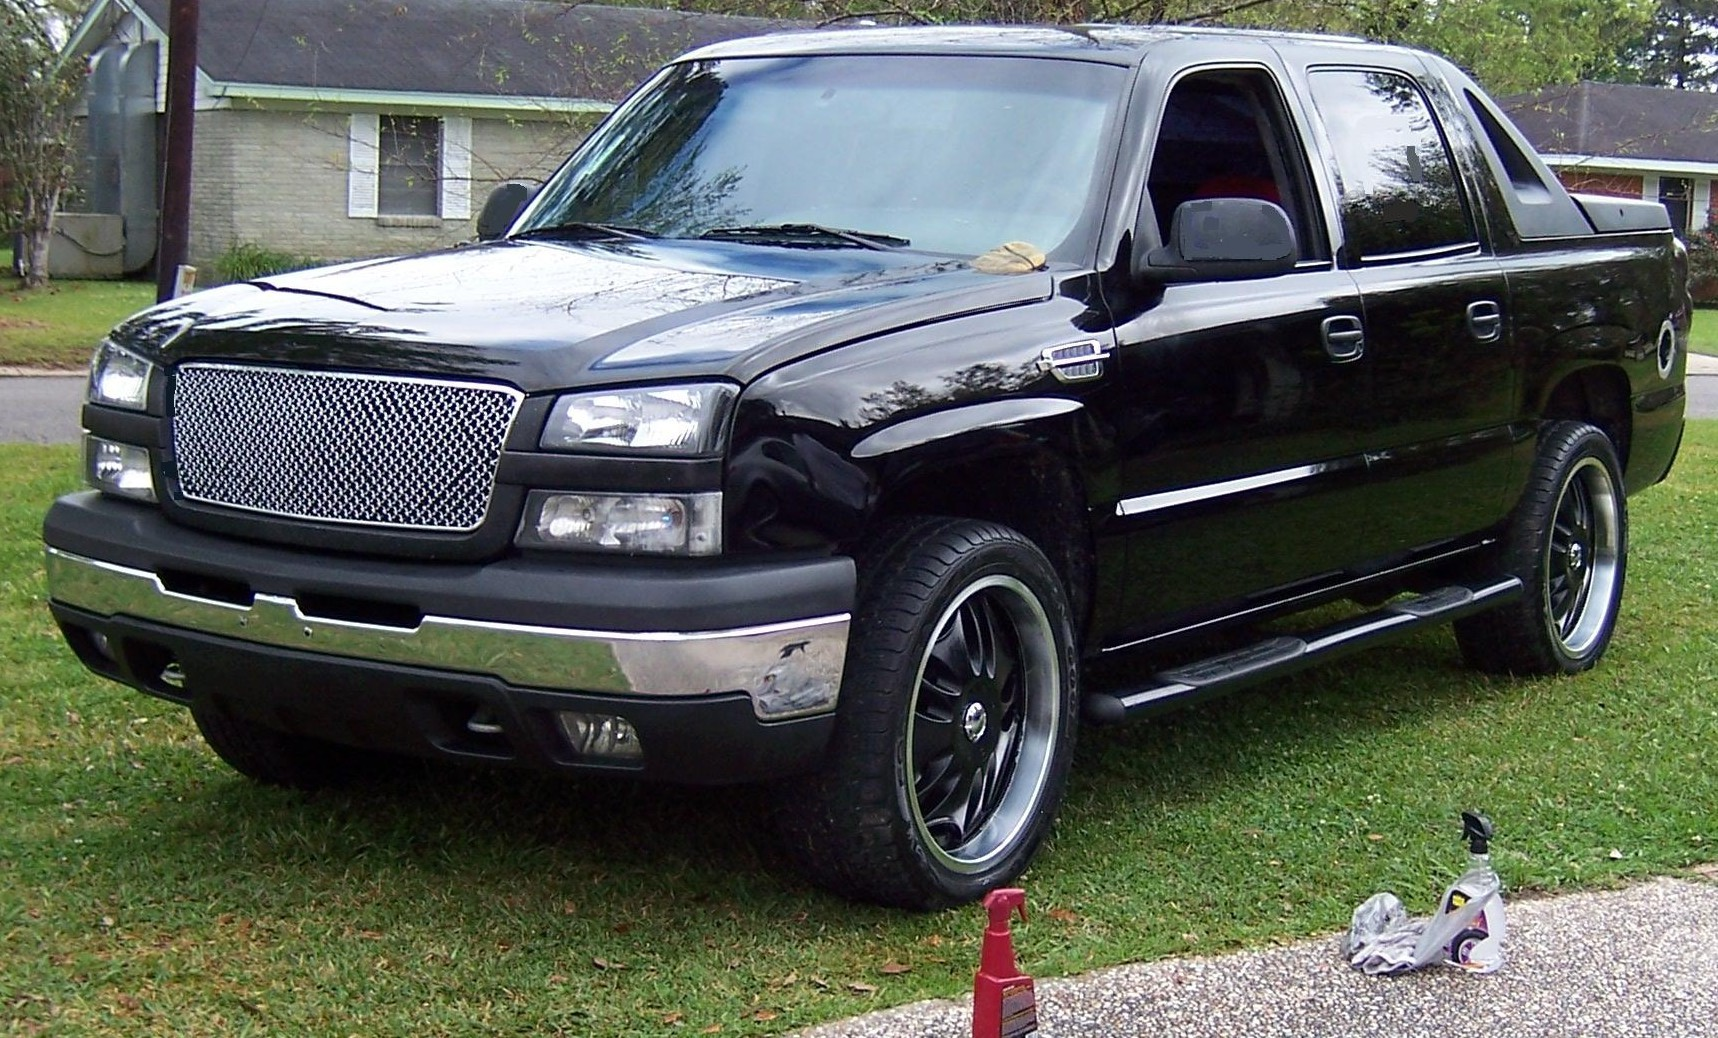 Toyota Lafayette La >> werideslow 2004 Chevrolet Avalanche Specs, Photos, Modification Info at CarDomain